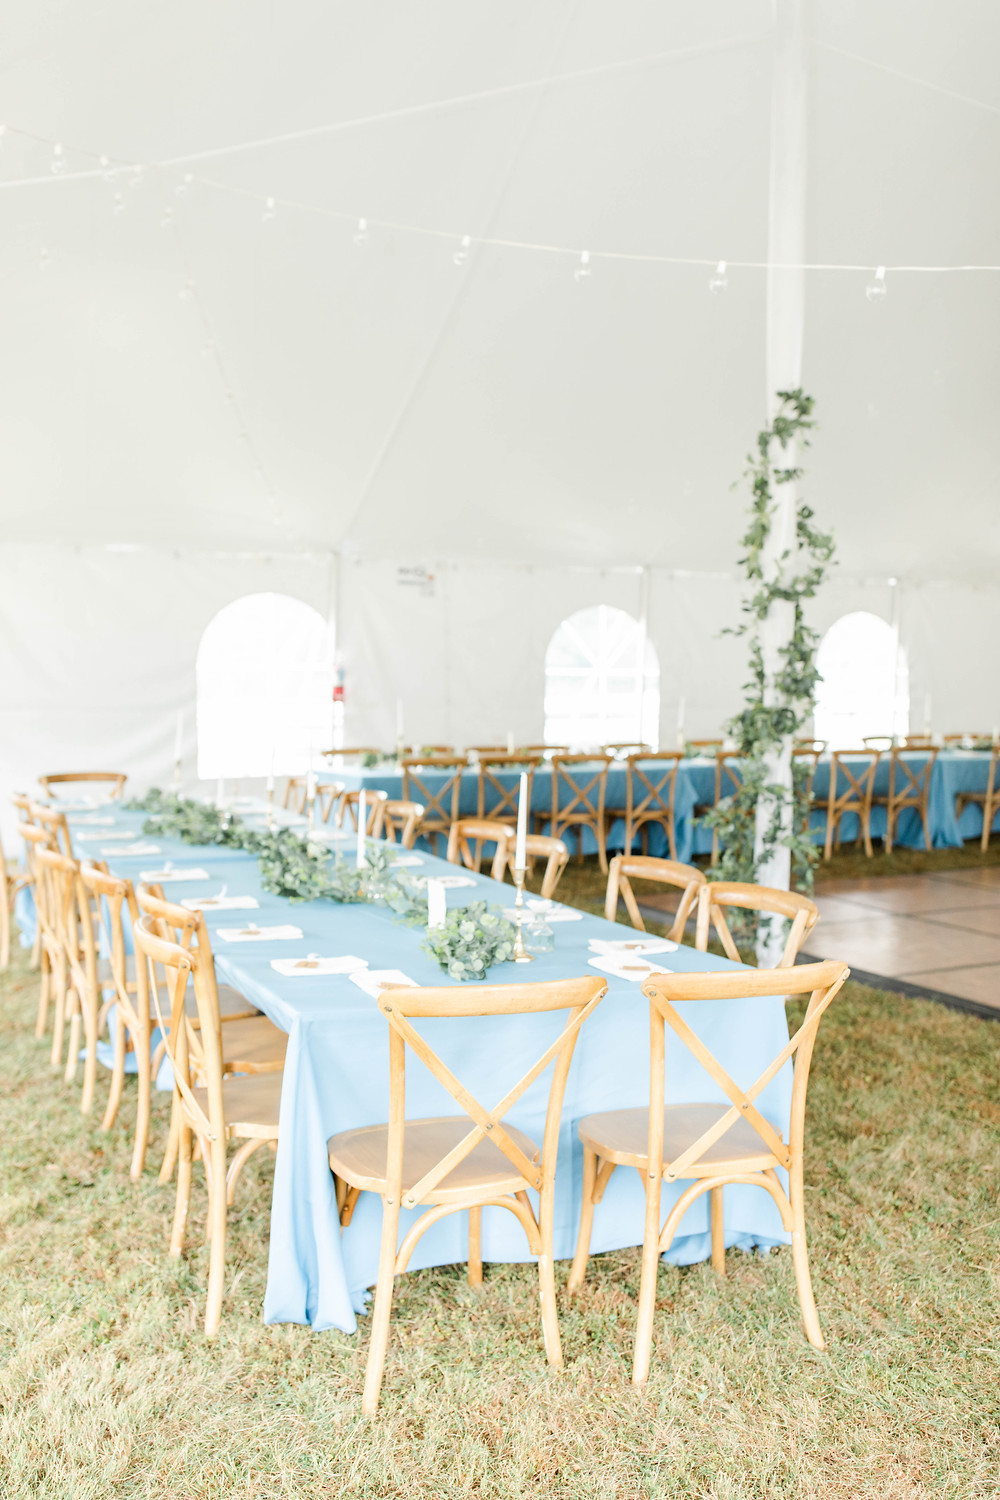 tent wedding with cross back chairs, blue tablecloths and garland